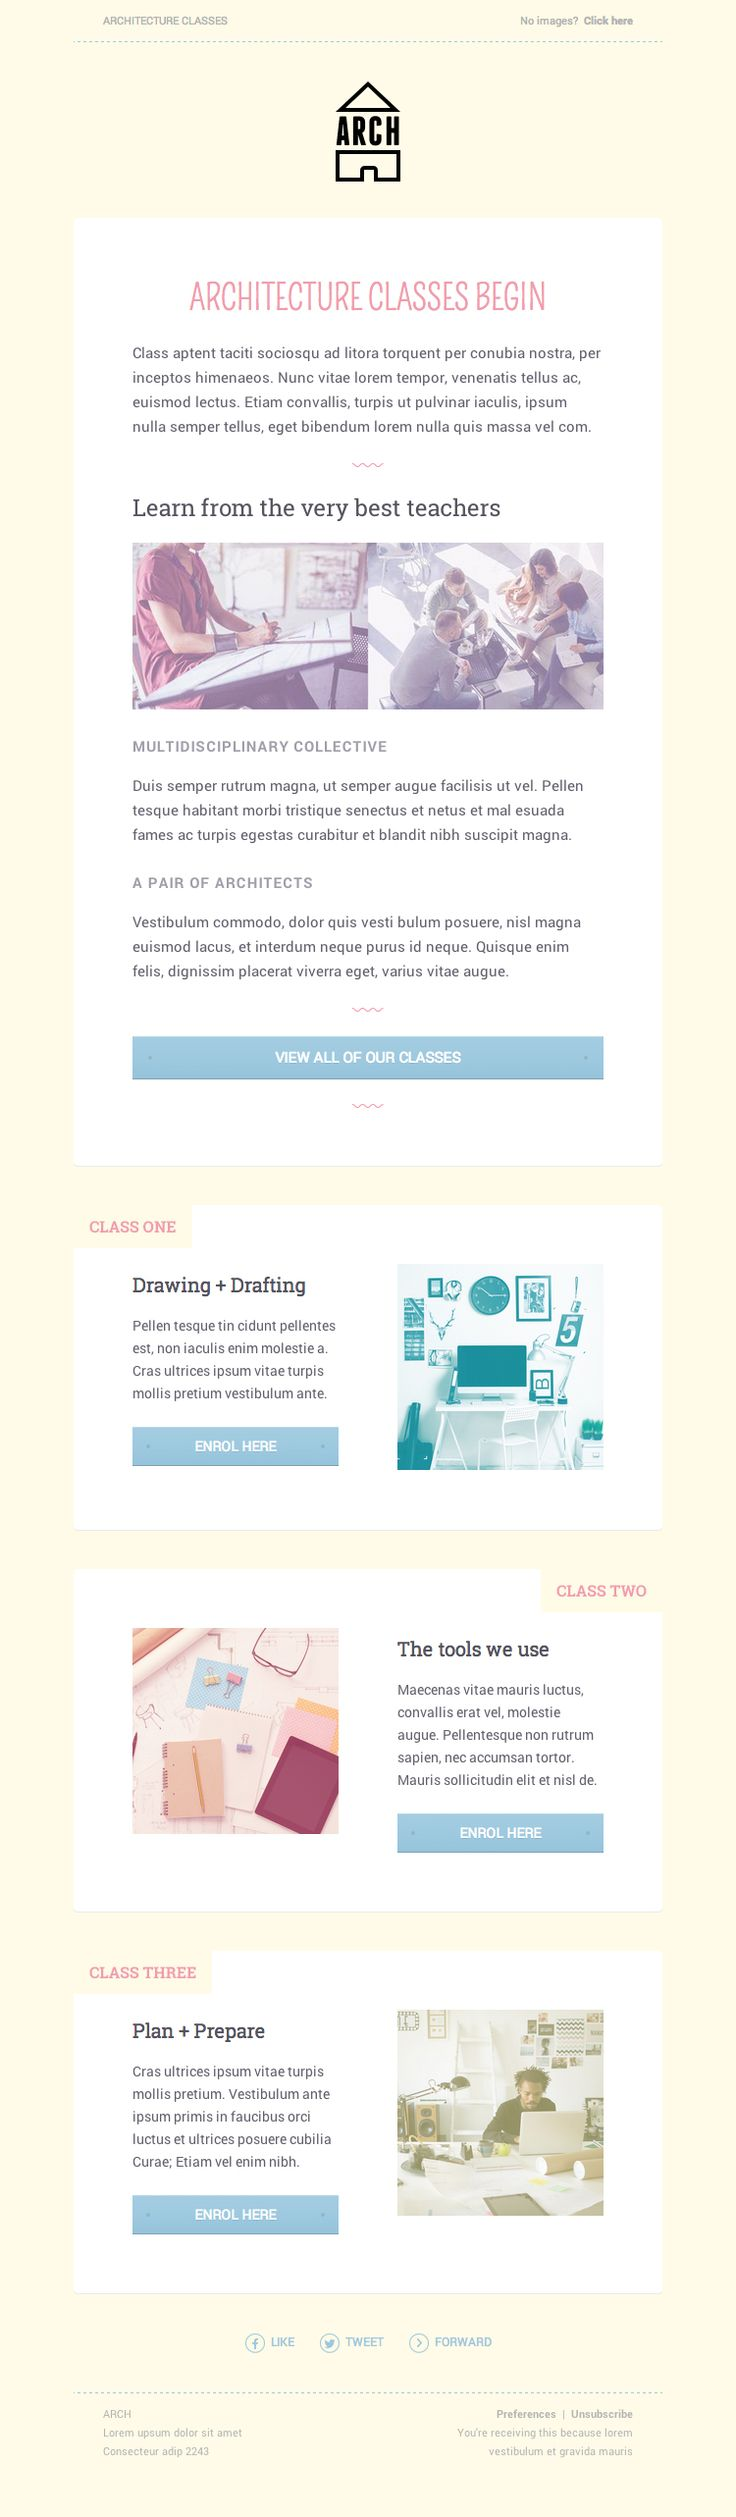 HTML email templates for free | Campaign Monitor Build a free HTML email template in just 60 seconds.  Choose one of the designs below to get started.